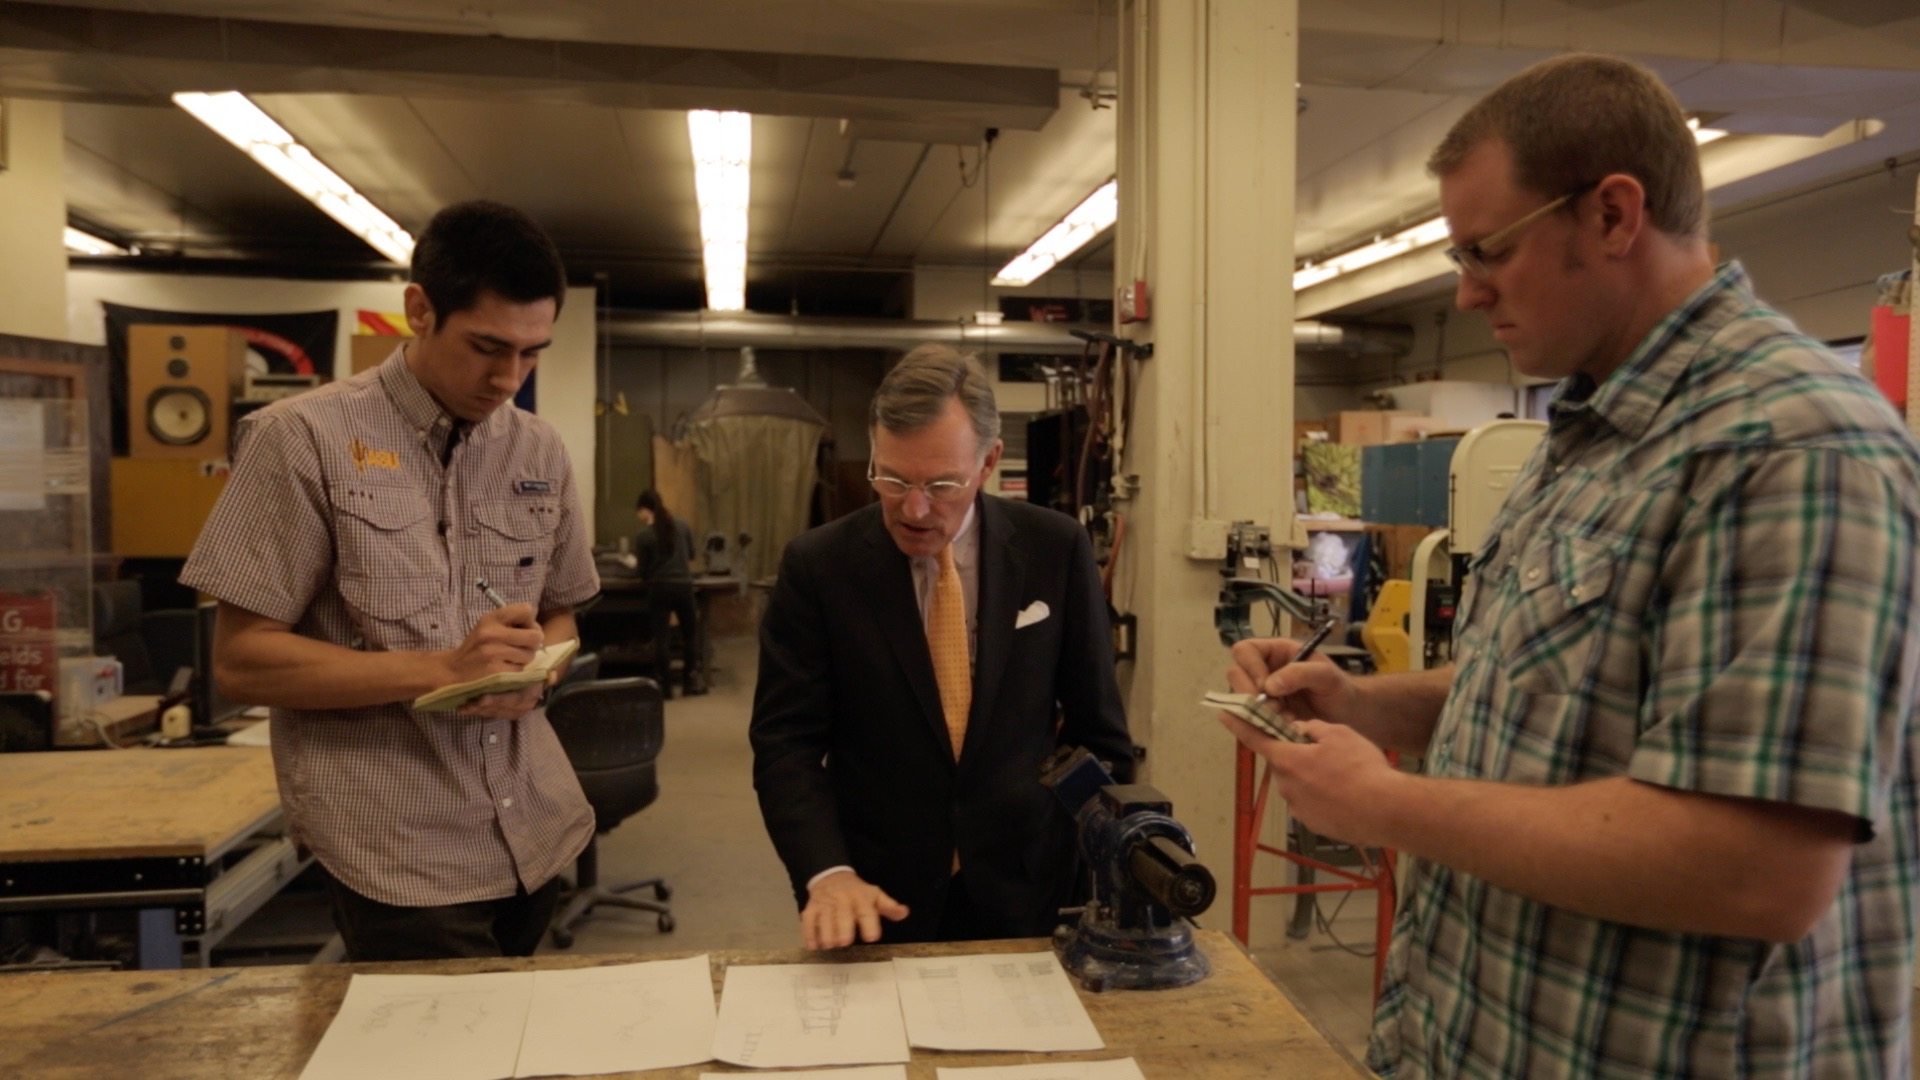 ASU students from the Herberger Institute for Design and the Arts, Miguel Cardona and Chase Young, work with Harold (Terry) McGraw III, former Chairman and CEO of The McGraw-Hill Companies, center, to design this year's McGraw Prize in Education. (Credit: Fervor Creative)